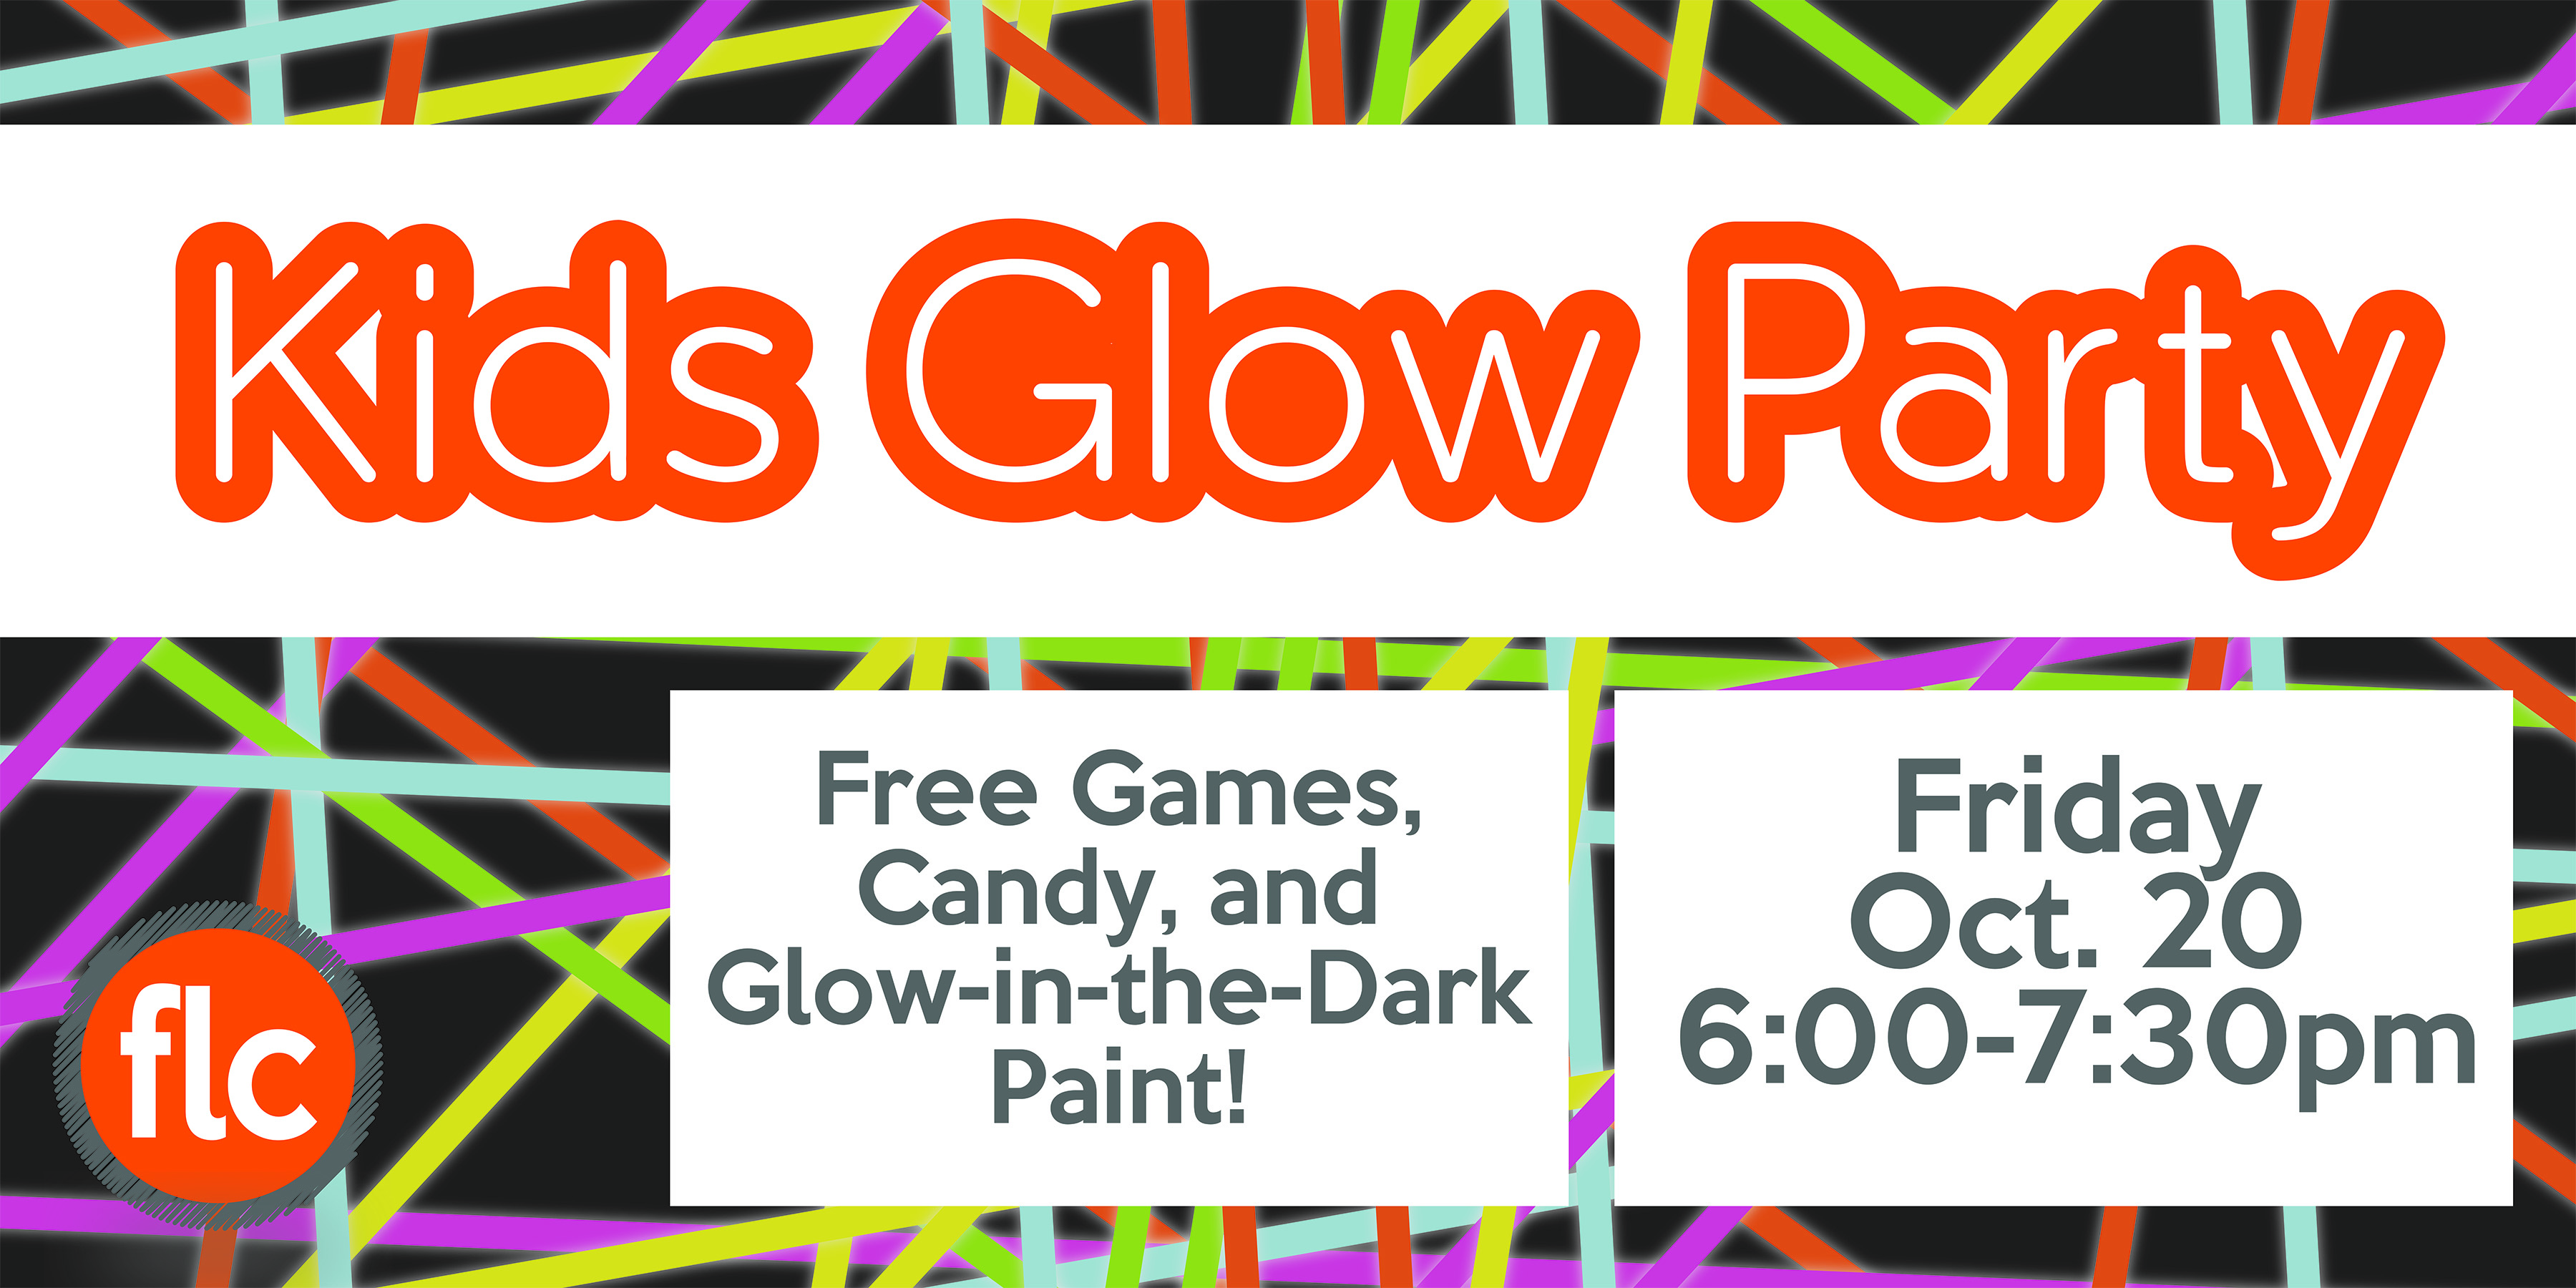 Glow in the dark party banner